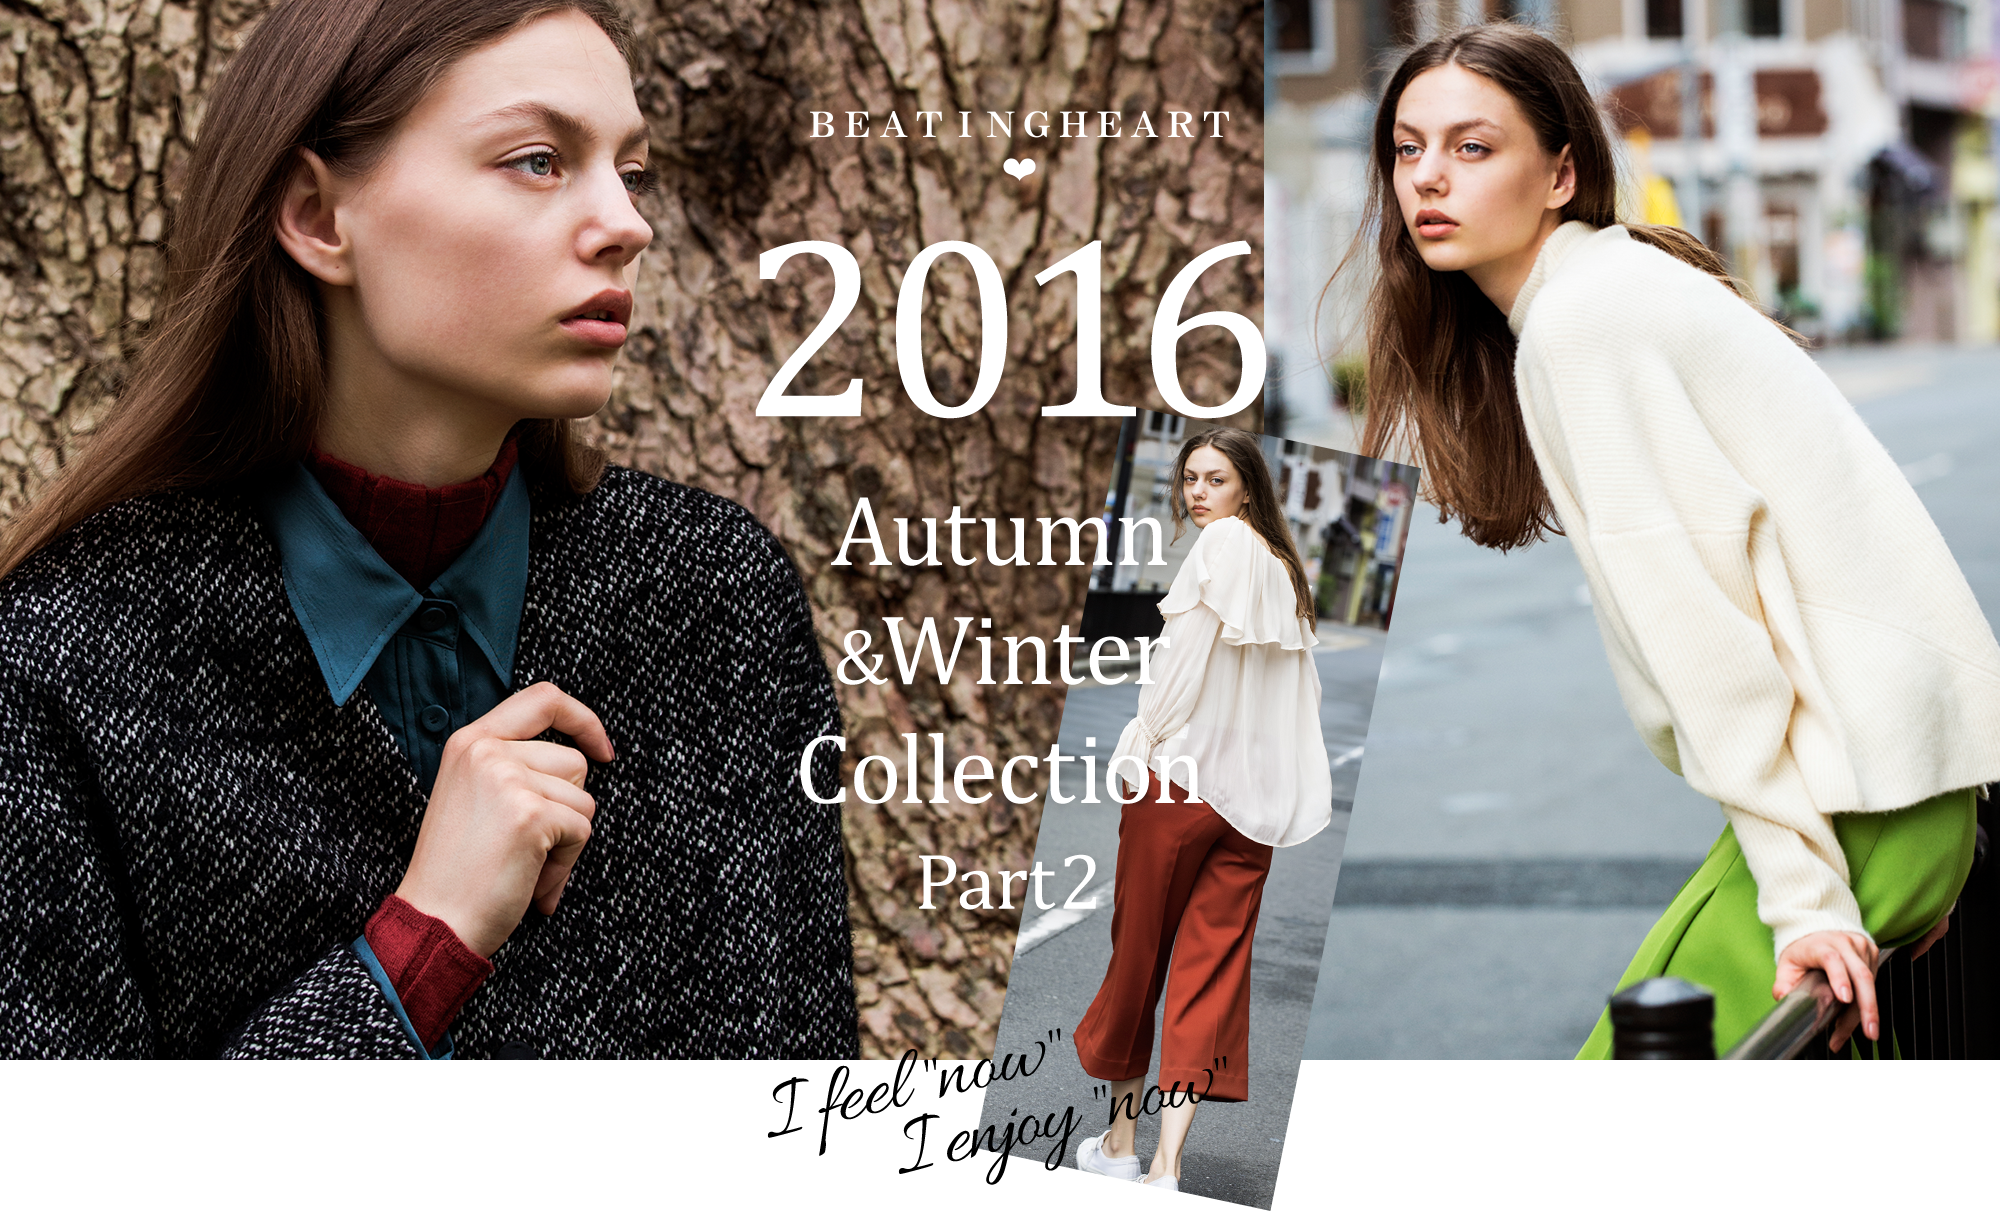 BEATING HEART 2016 Autumn&Winter Collection Part2